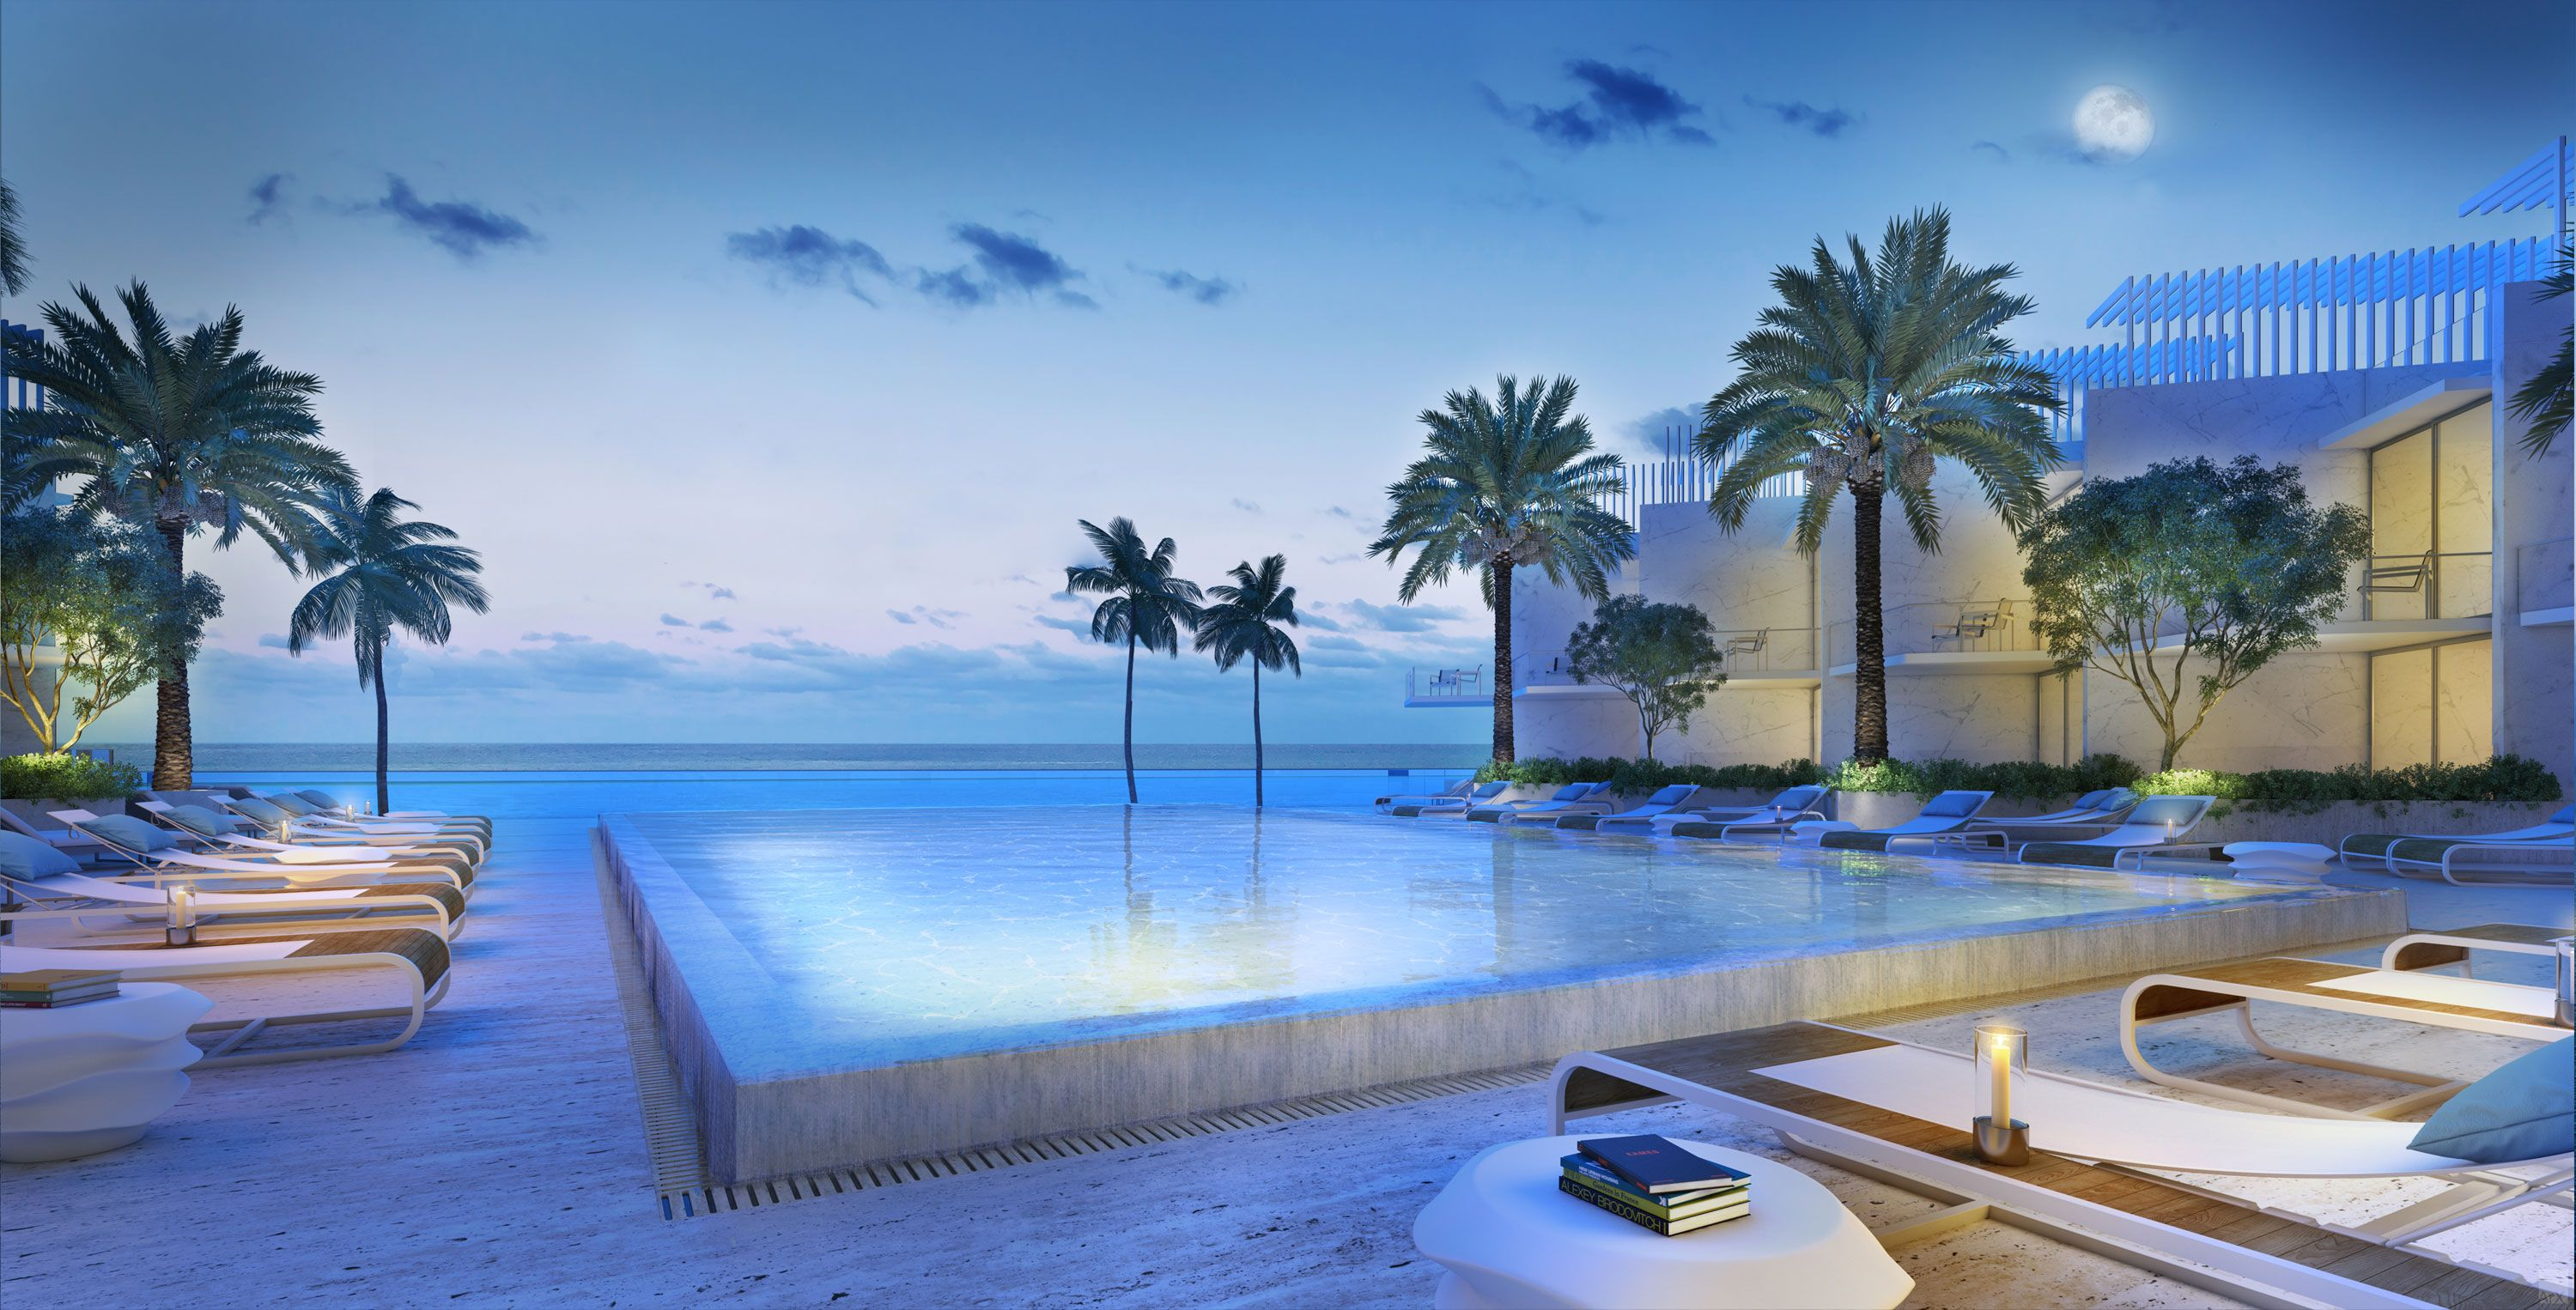 ImagesTurnberry Ocean Club Pre-Construction Sales | Turnberry Ocean Club Pre-Construction Sales